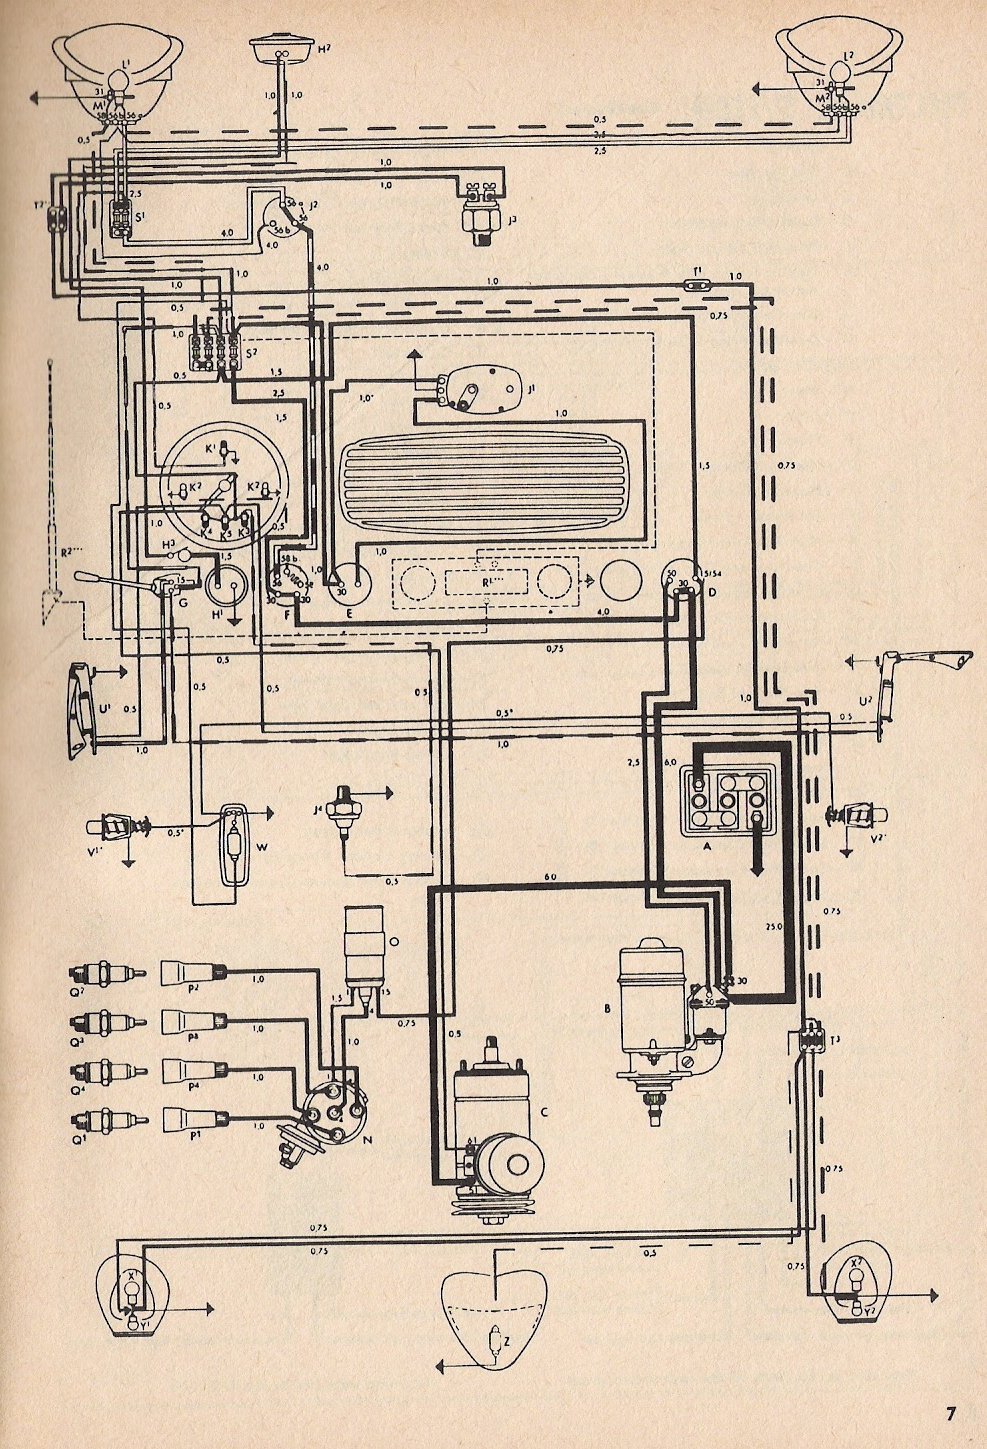 hight resolution of 1963 vw bug wiring simple wiring diagram schema 1963 vw engine wiring 1963 vw bug wiring